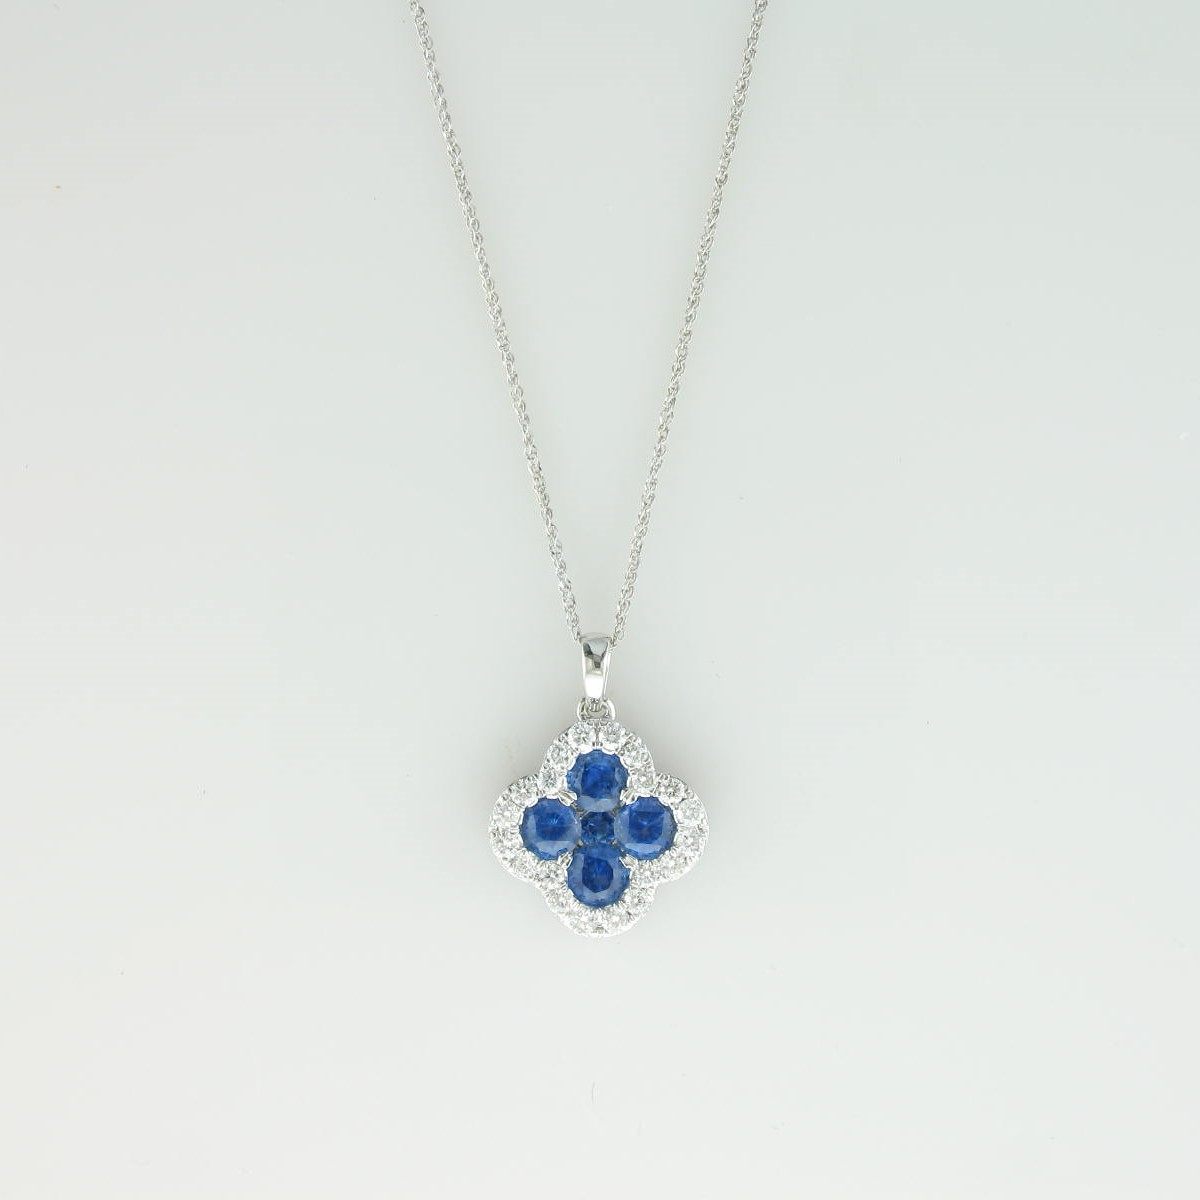 1.21tcw Sapphire & Diamond Necklace set in 14k White Gold